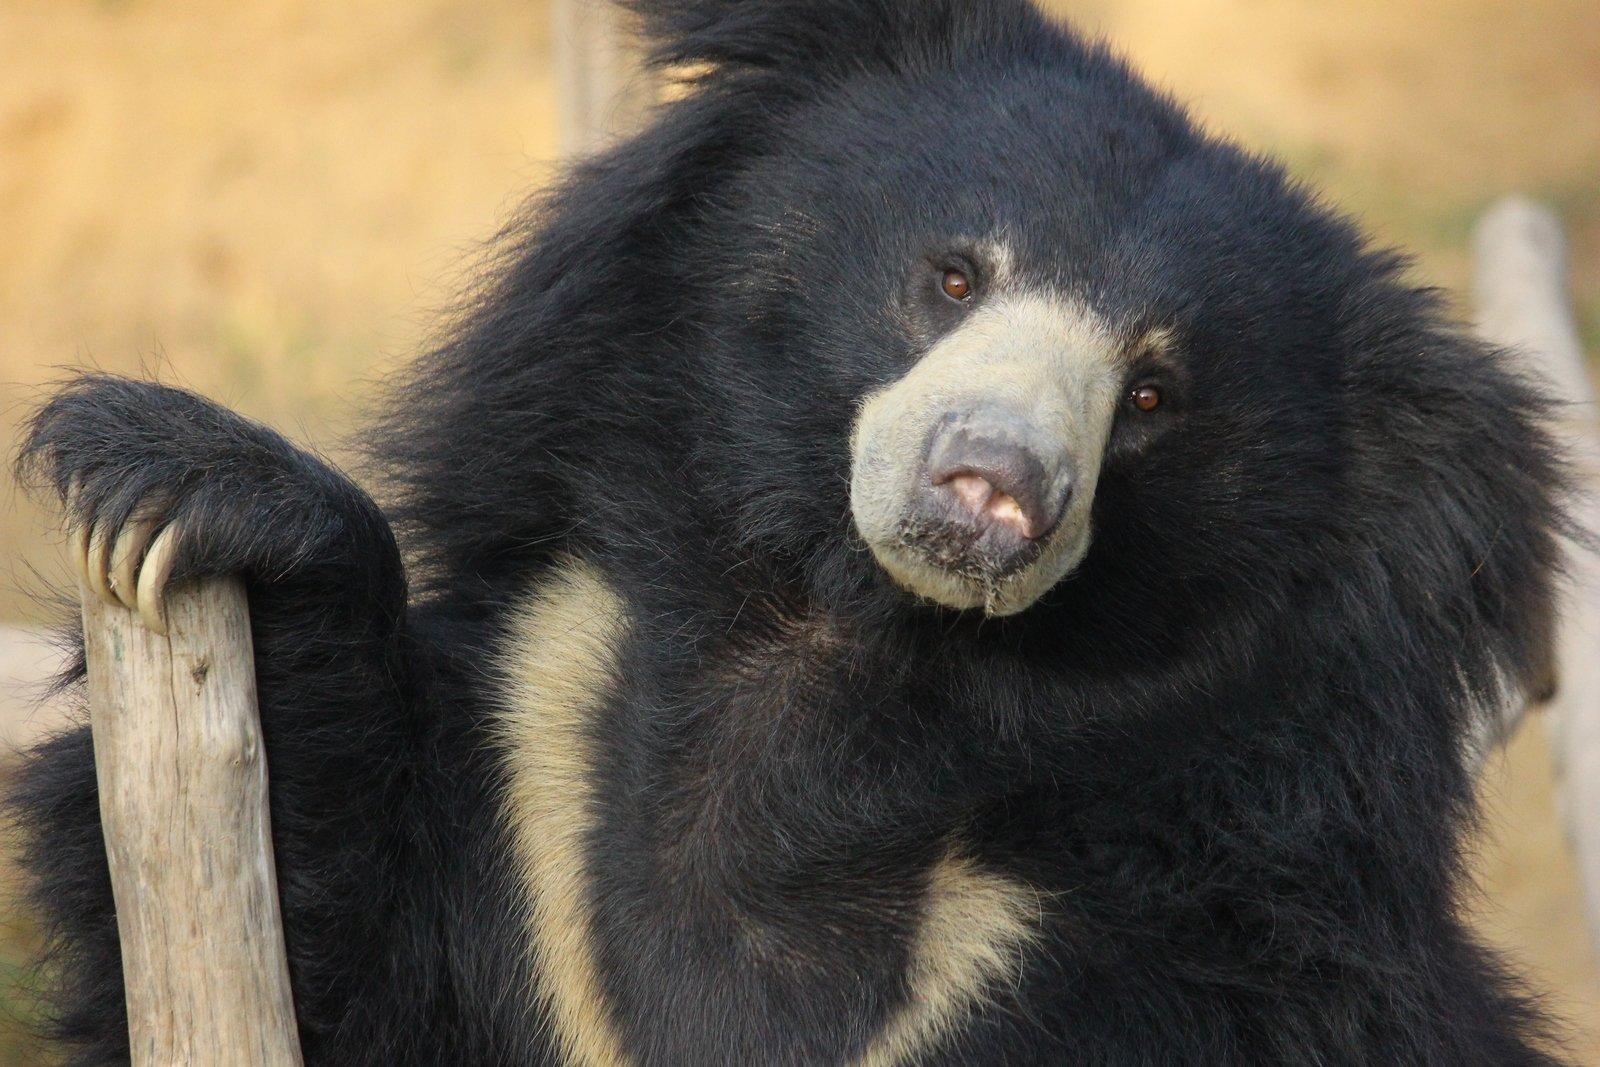 Breaking tradition: The path to saving India's sloth bears - GLOBAL HEROES MAGAZINE